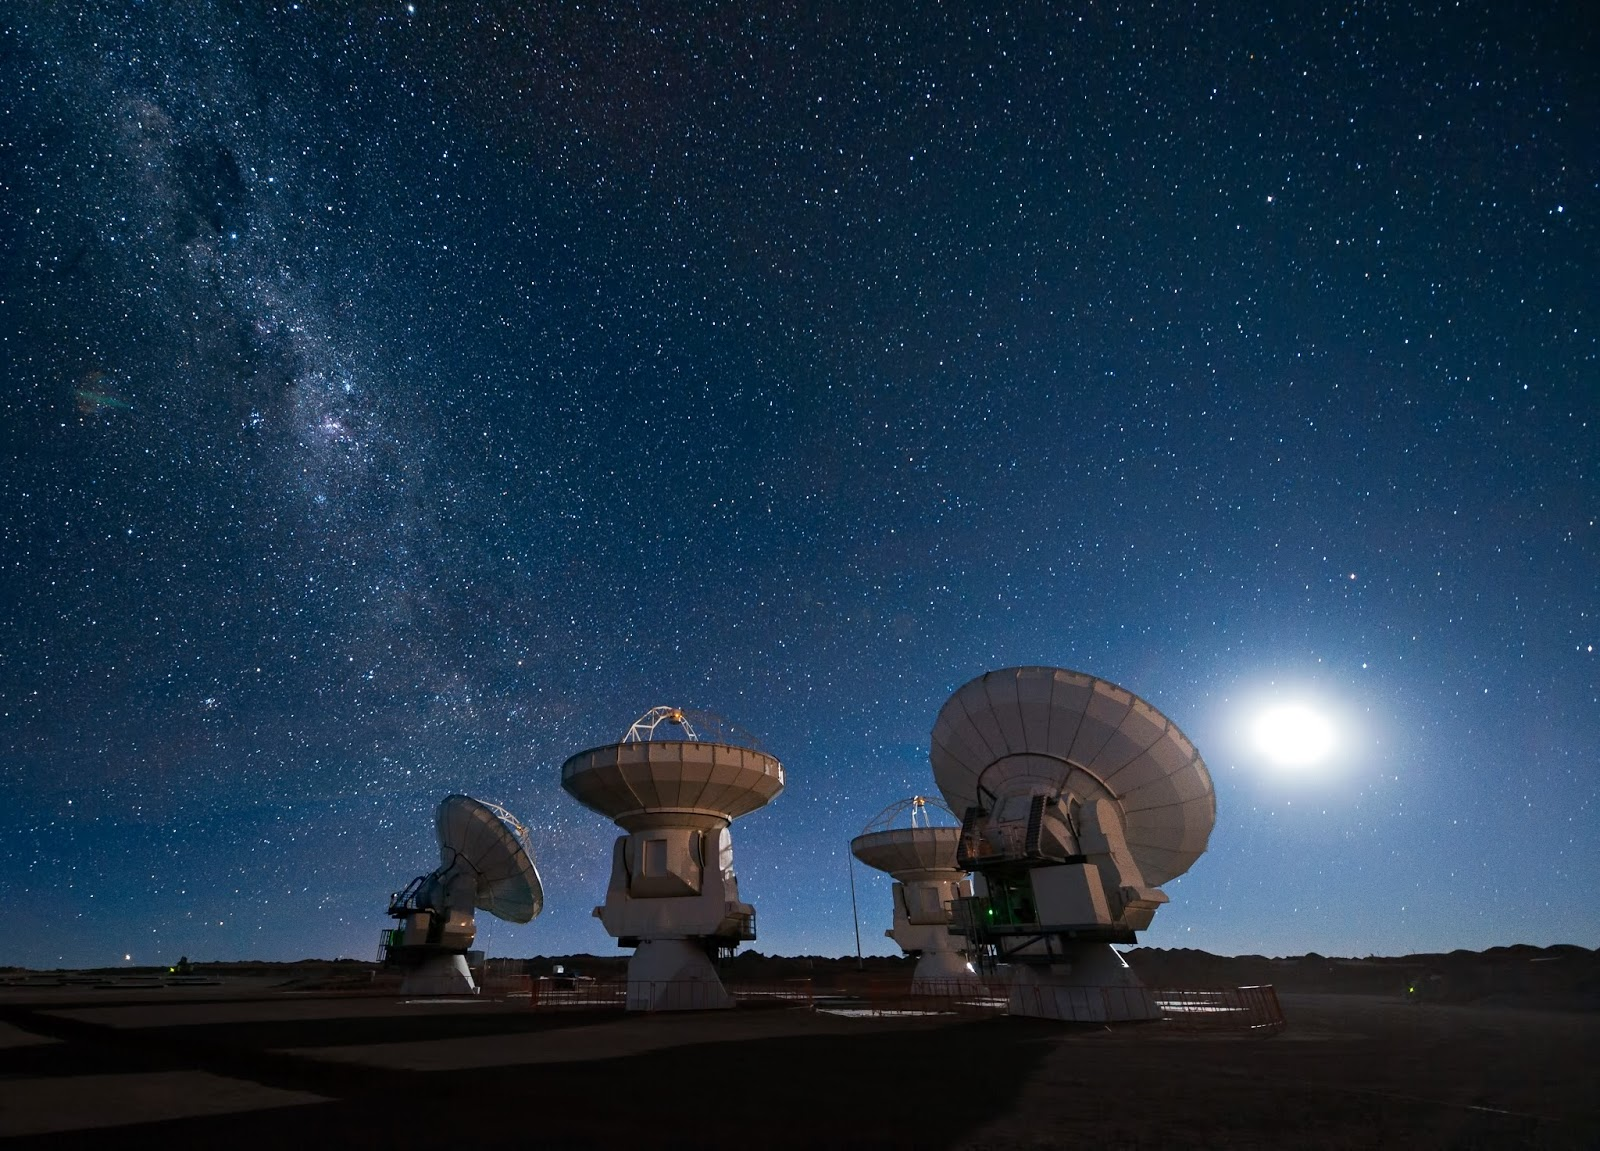 Milky Way Galaxy - ALMA Antennas